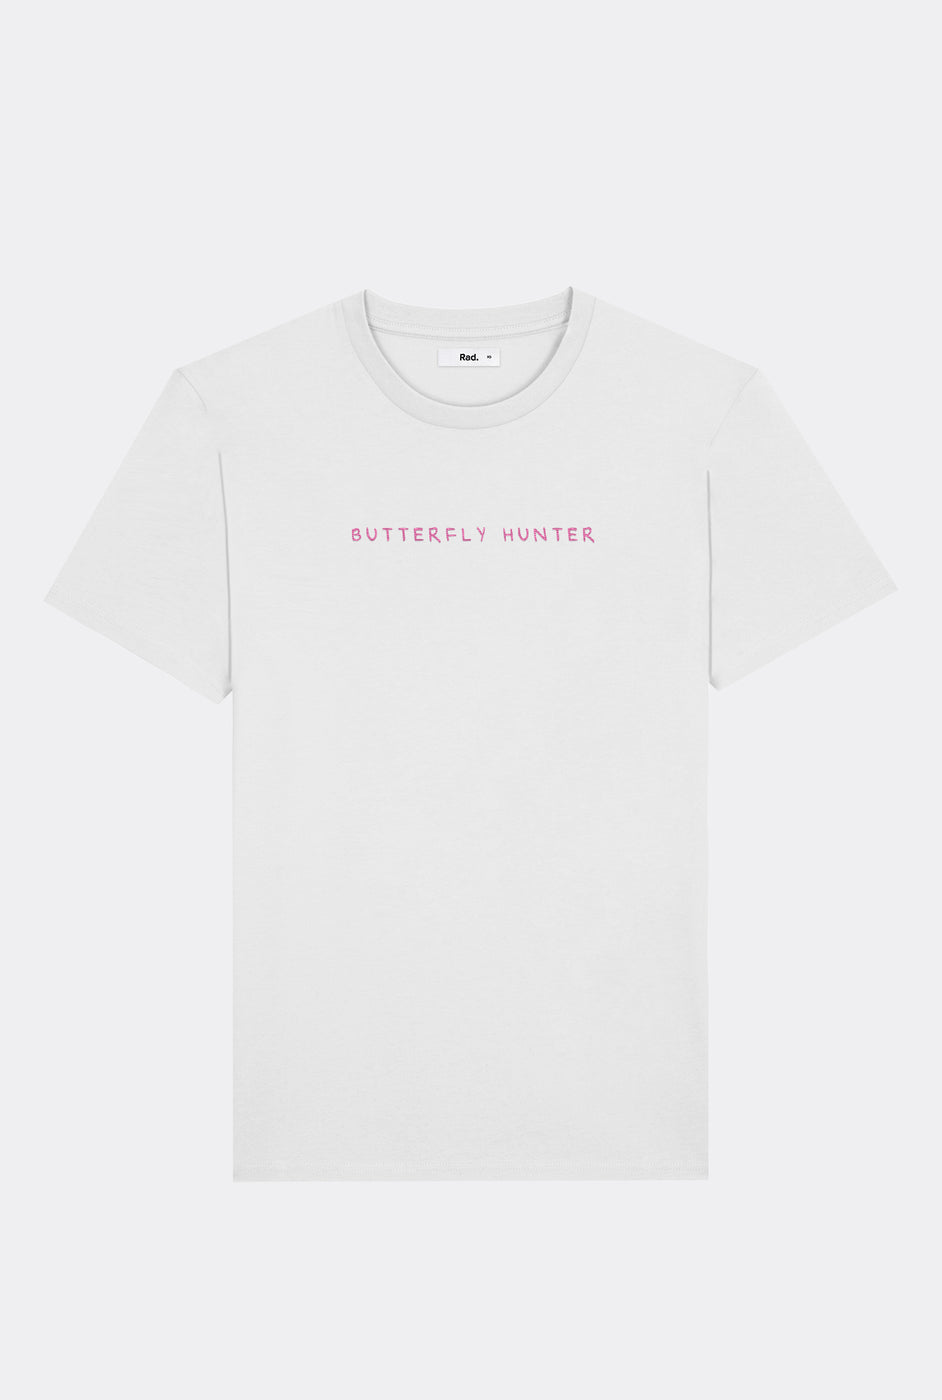 T-Shirt S/S Butterfly Hunter - Embroidered